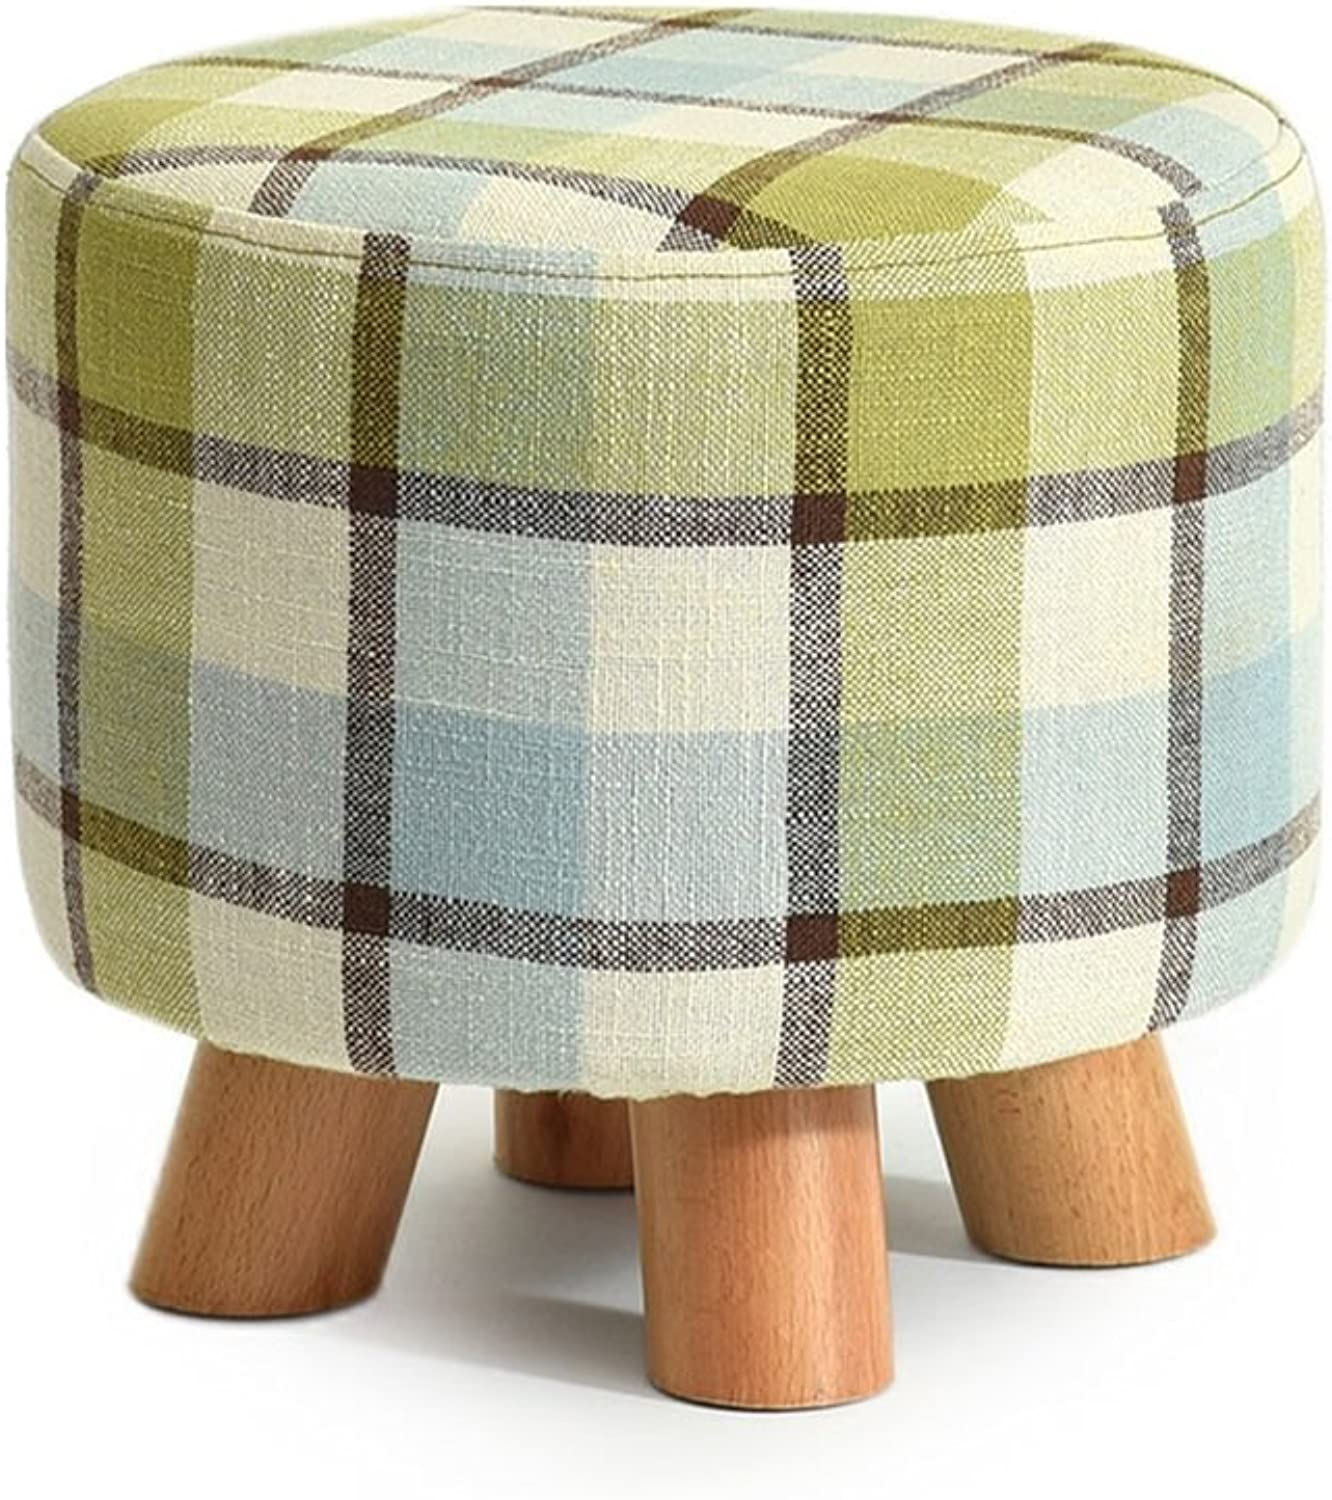 Solid Wood shoes Stool Round Upholstered Footstool Sofa Low Stool Footrest Small Seat Foot Rest Chair Stripes (color    1)